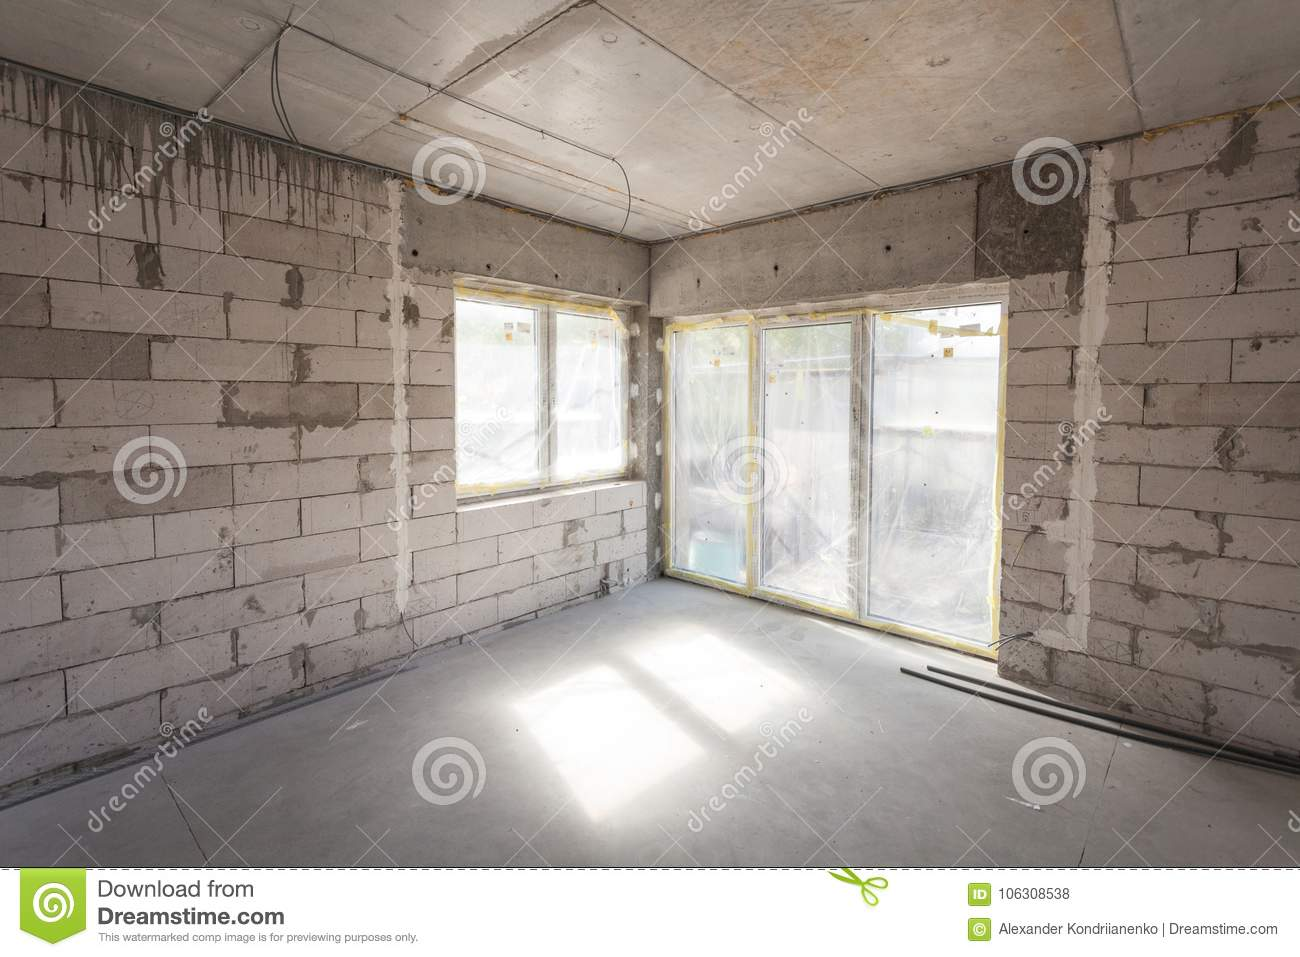 New House Under Construction Aerated Concrete Blocks Cement Wiring Brickwork Walls Plastic Window